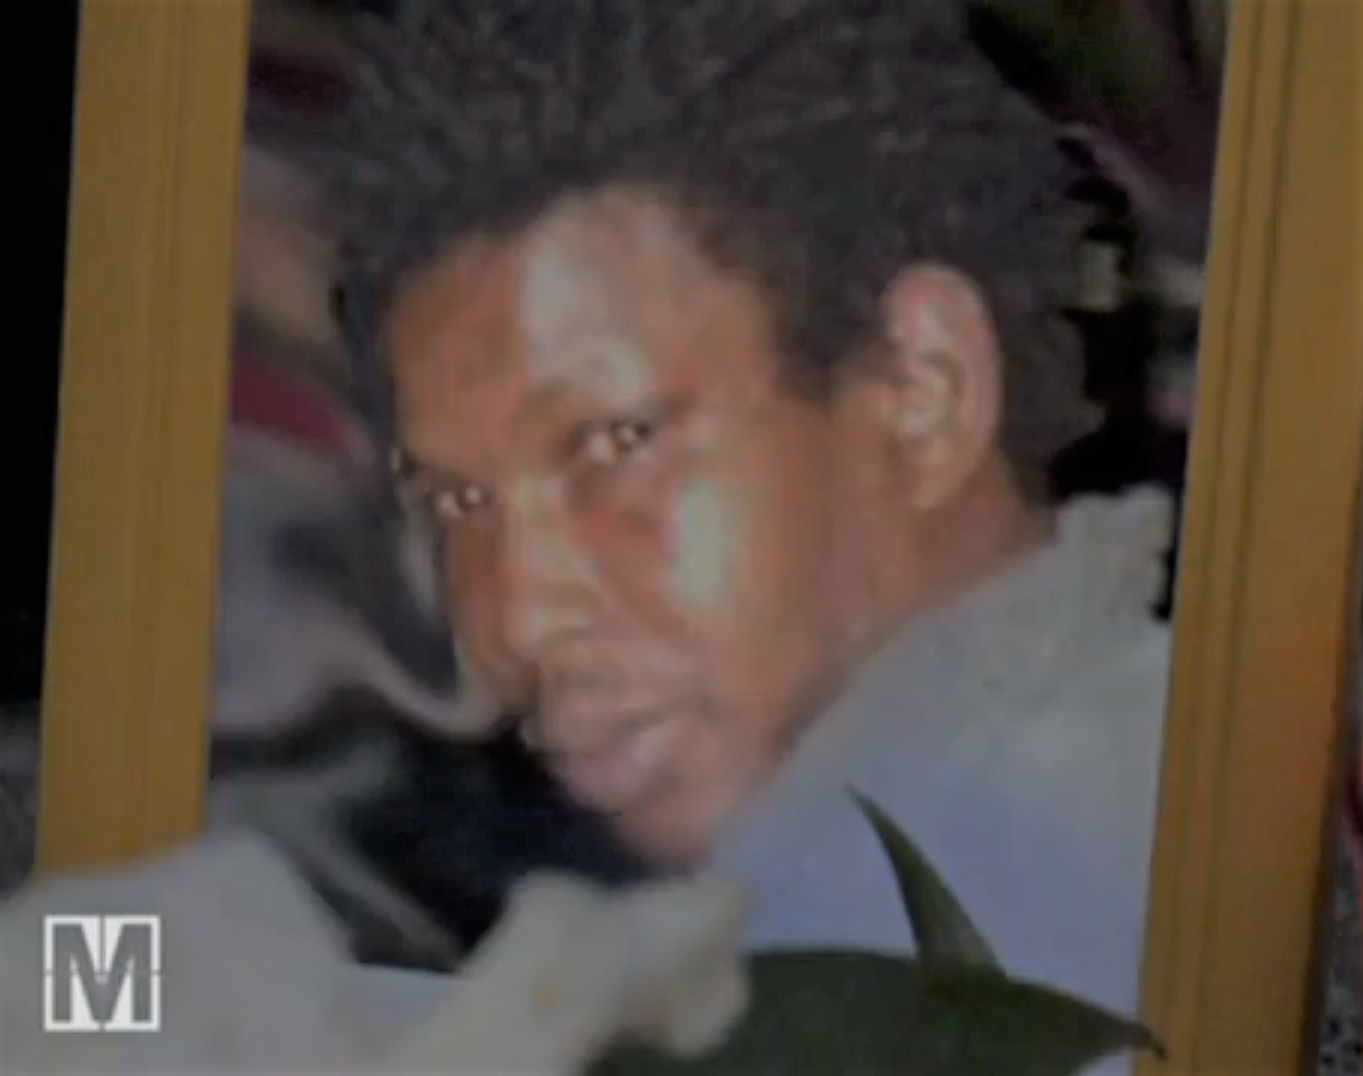 Picture of Oury Jalloh, victim of black police brutality alongside George Floyd